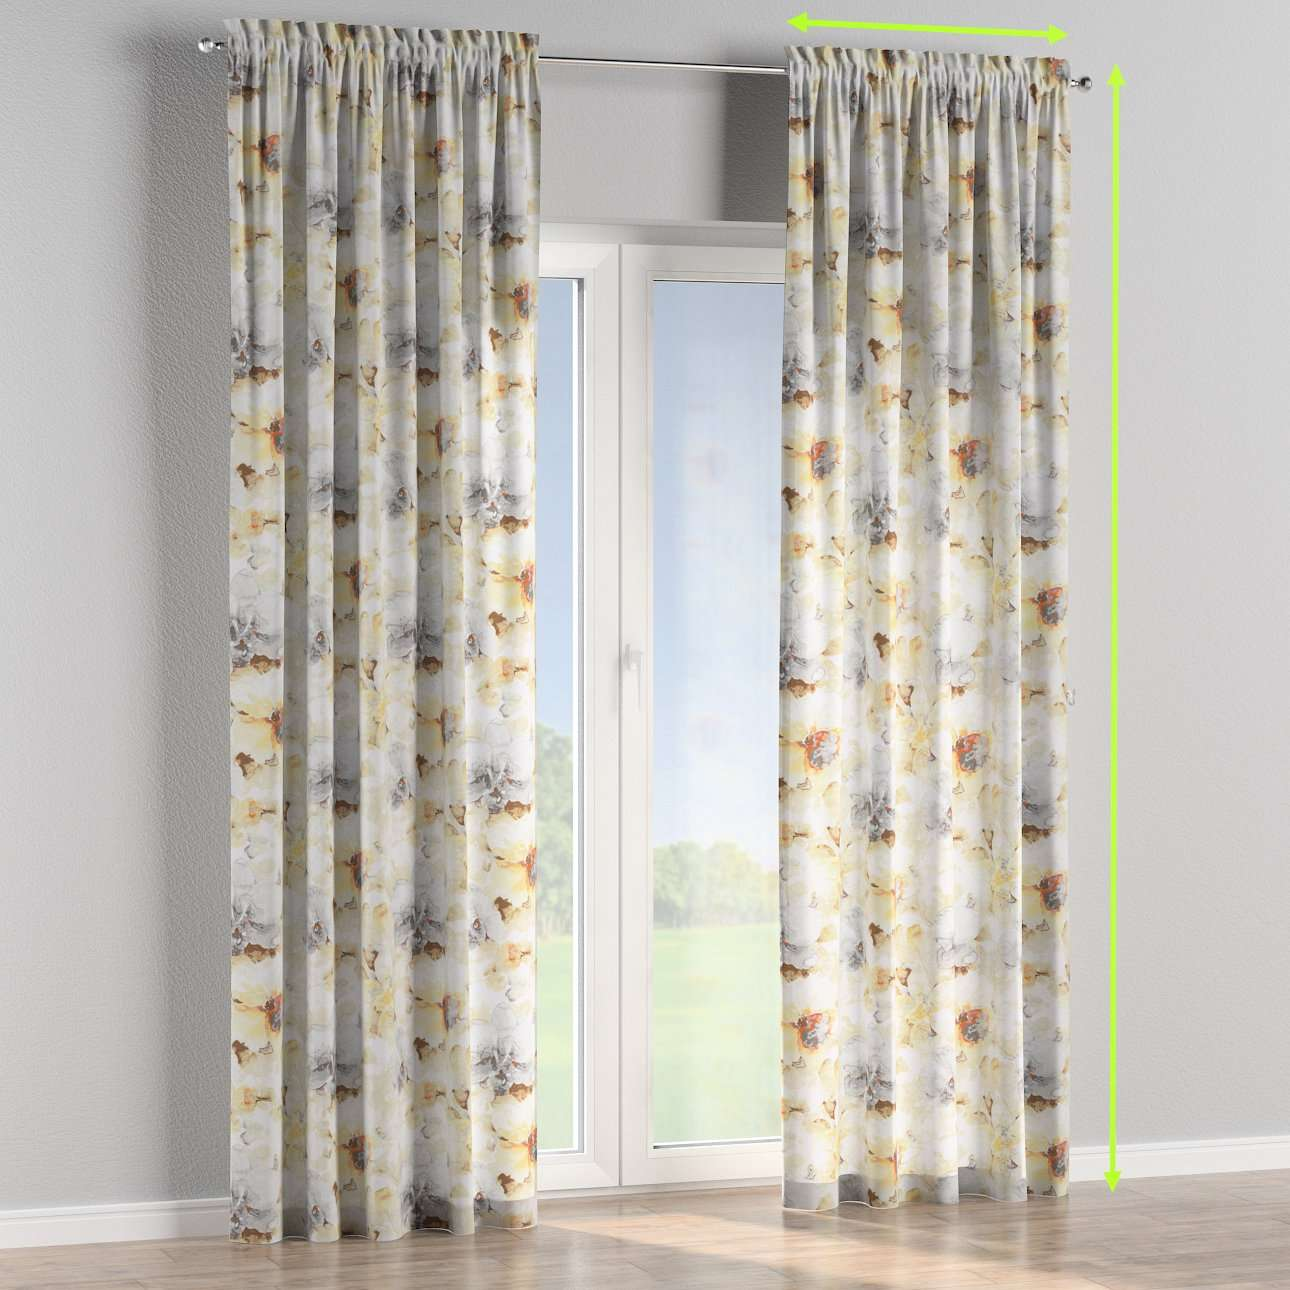 Slot and frill lined curtains in collection Acapulco, fabric: 141-33